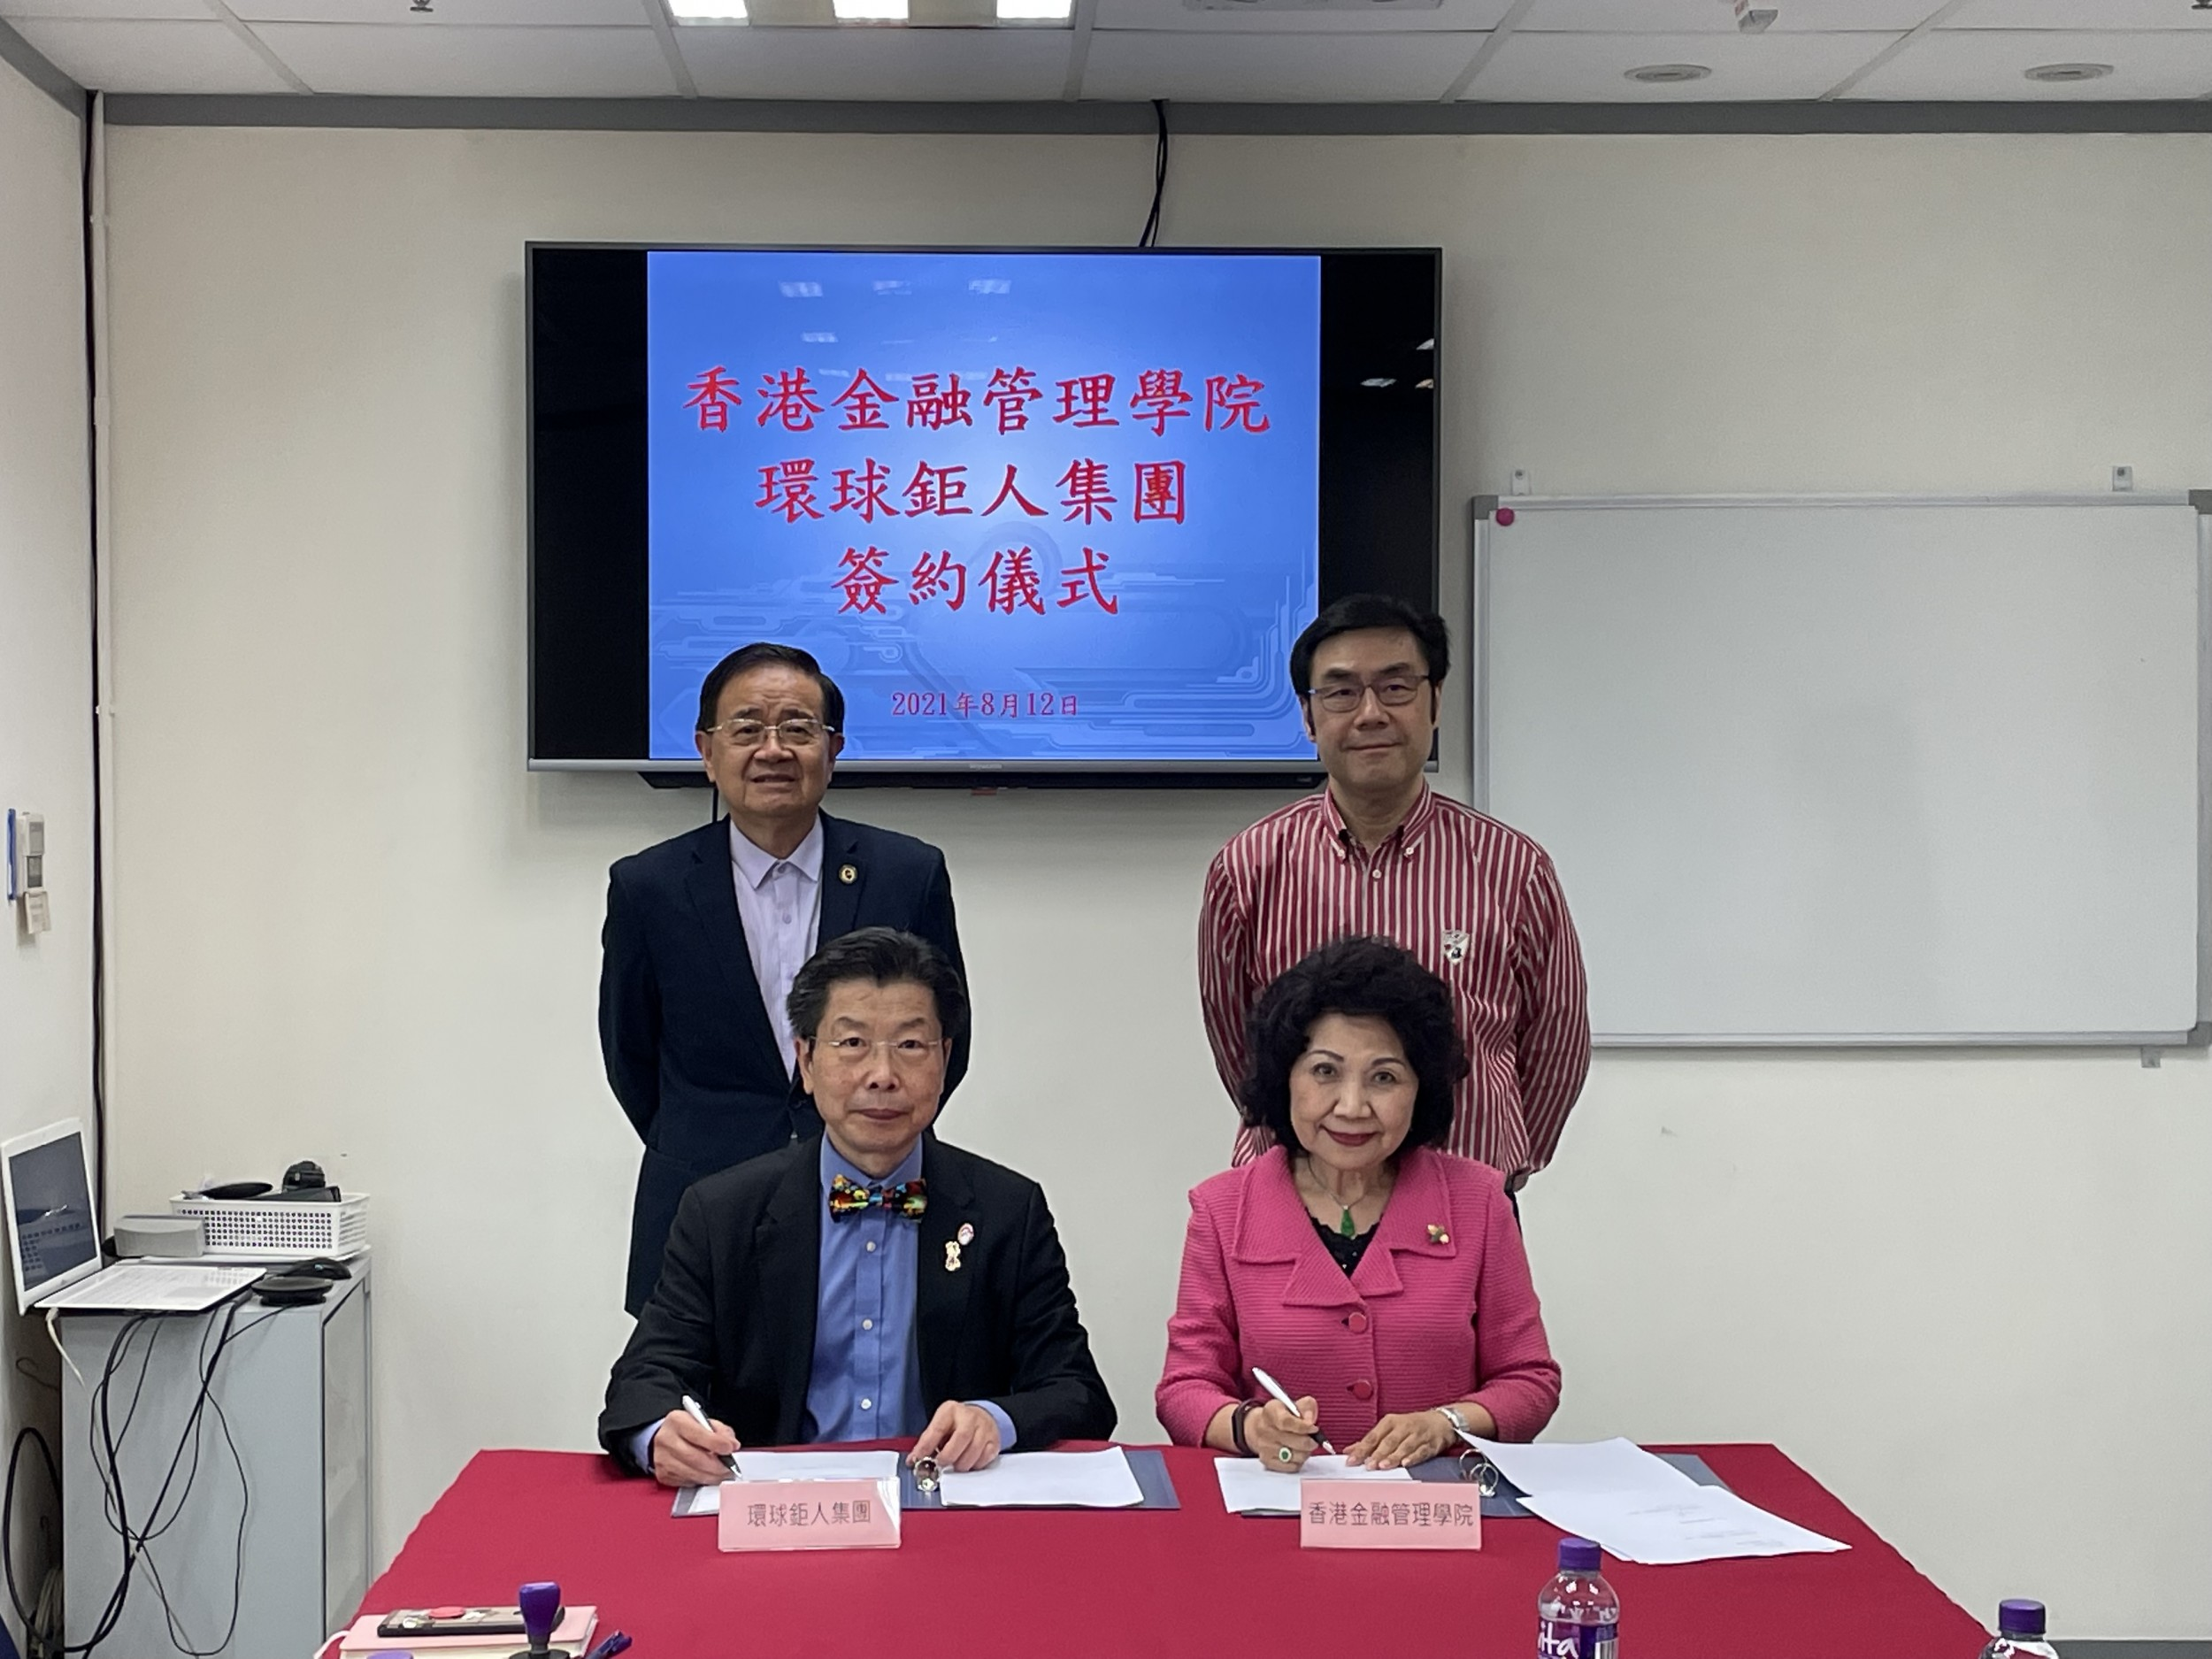 Strategic collaboration between GLC and Hong Kong Financial Services Institute